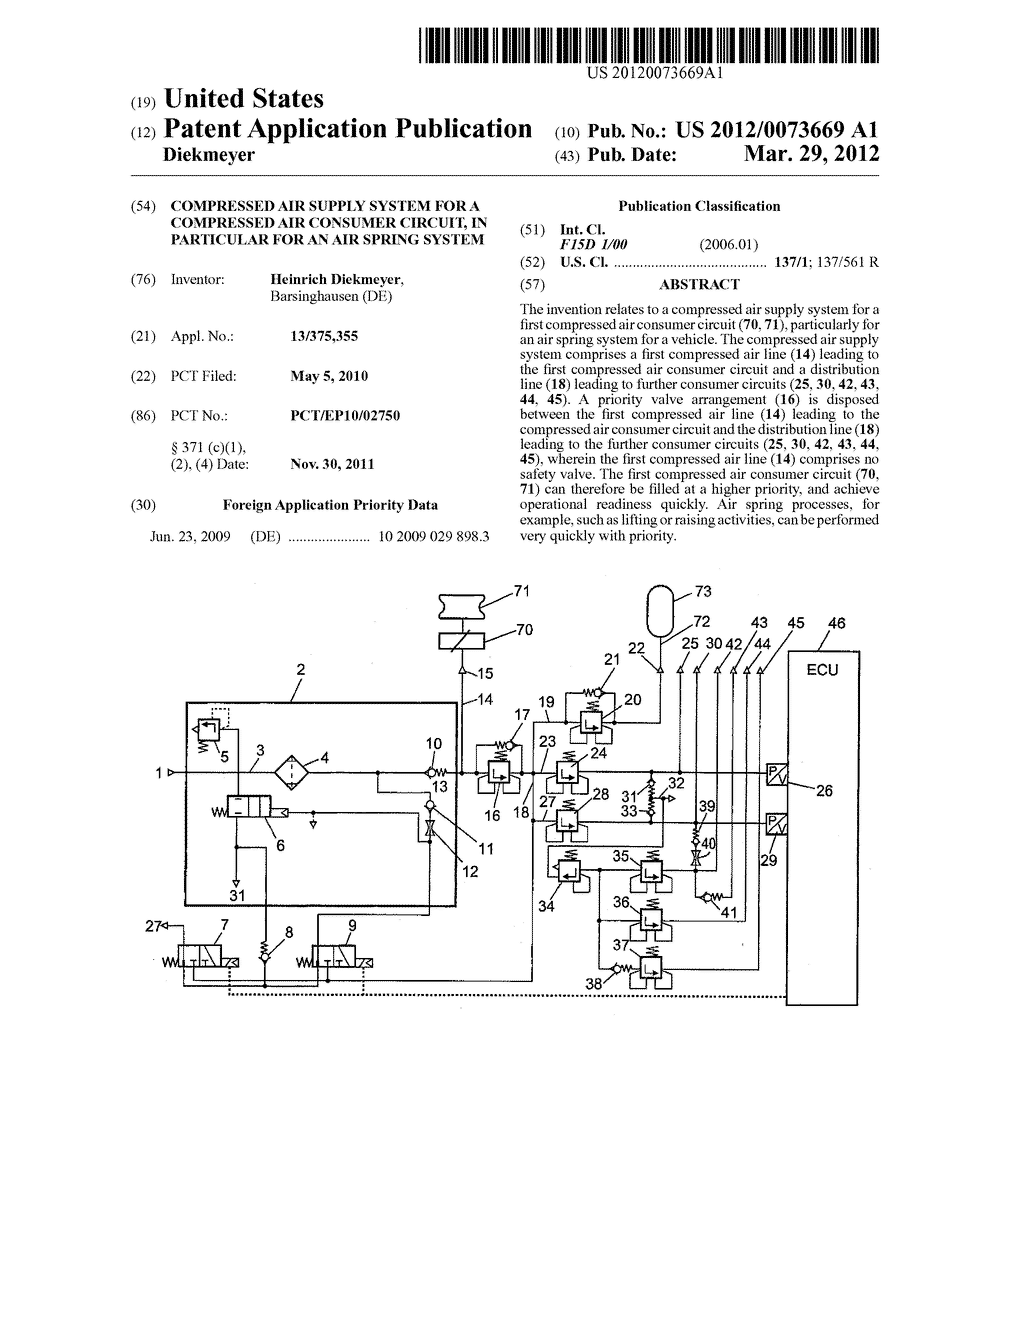 Compressed Air Supply System For A Consumer Circuit Schematic In Particular An Spring Diagram And Image 01